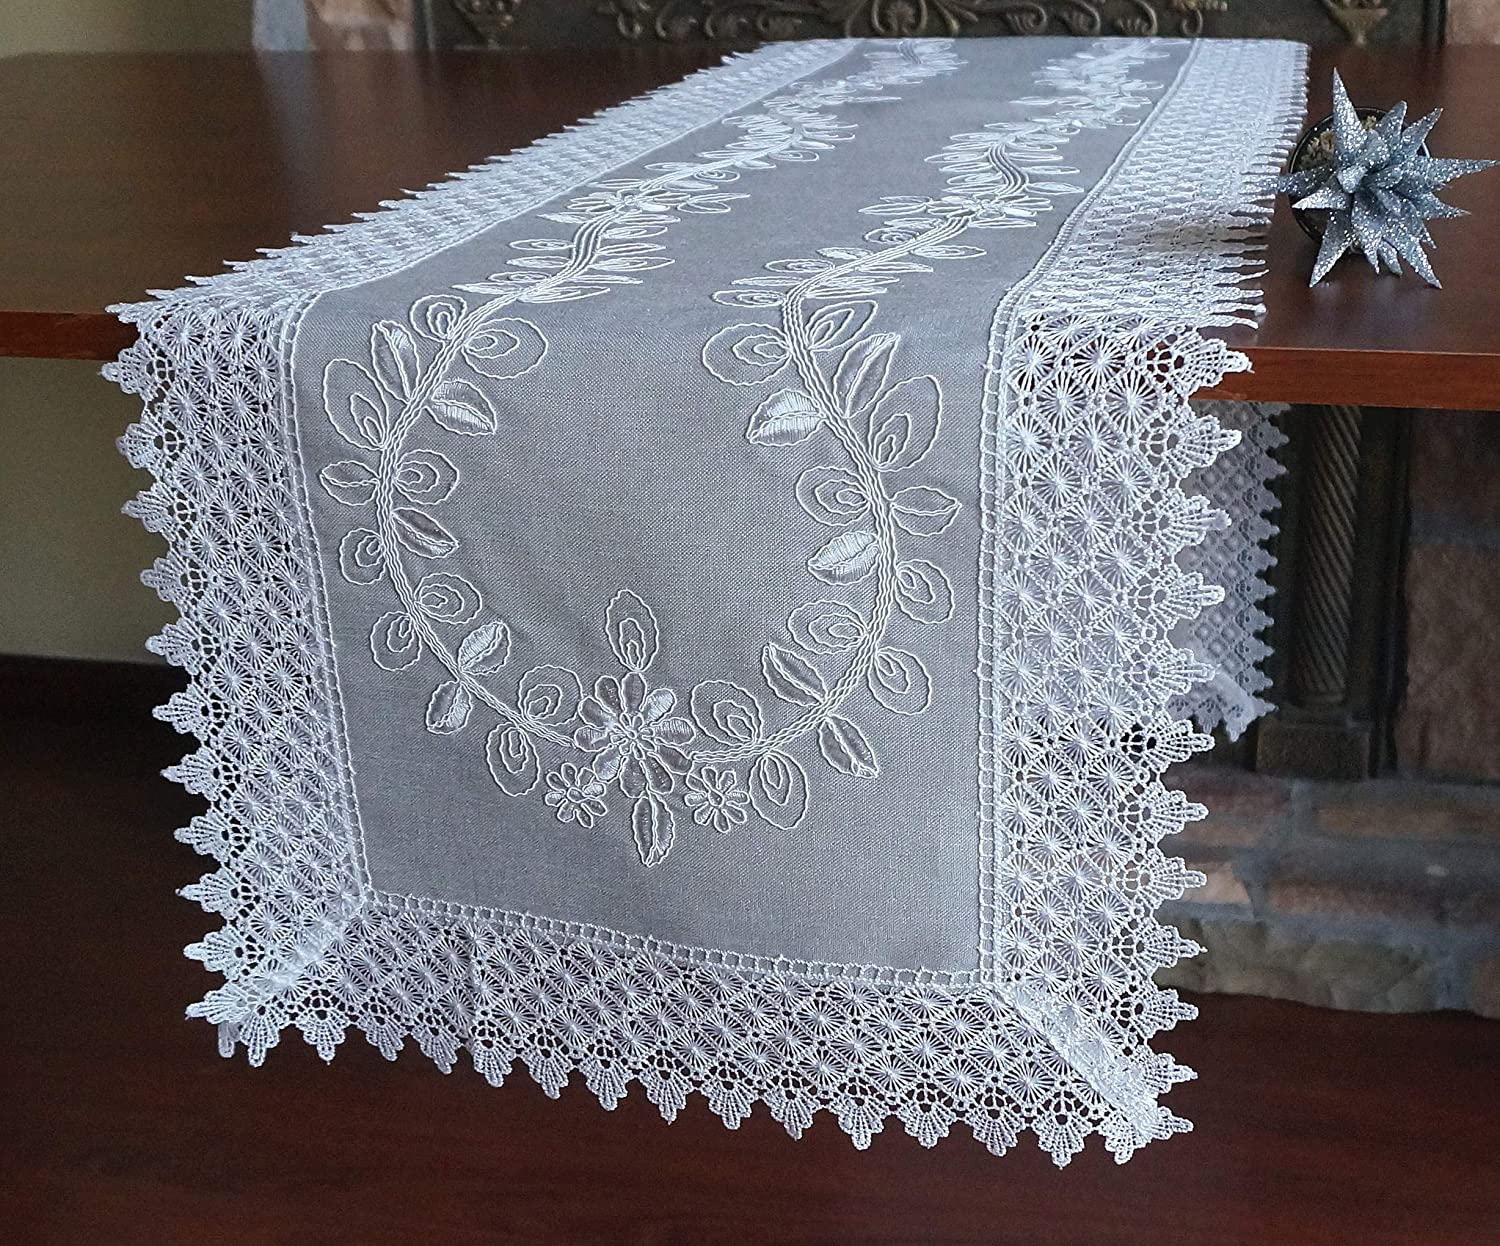 "Holiday Christmas Lace Table Runner 16""x71"" ,Embroidered Grey Fabric with White Thread Dresser Scarf Table Covers For Wedding Holiday Xmas Family Party Table Decoration (Runner 16""x71"", Grey&White)"